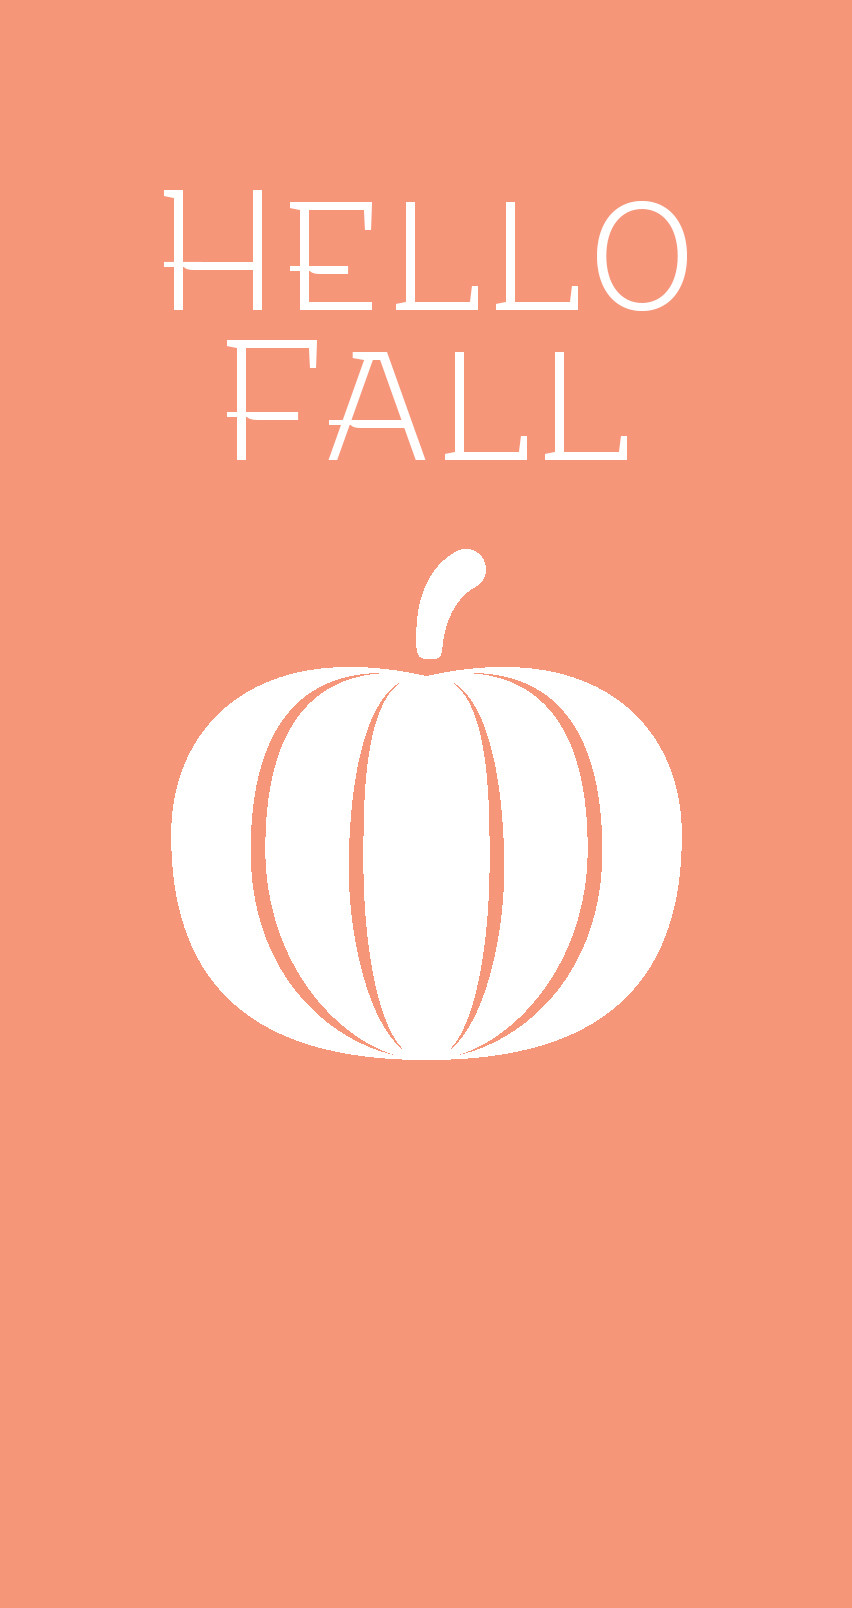 2017 Fall Autumn Phone Backgrounds - Fall Phone Wallpapers - but first coffee background - psl background - pumpkin spice latte background - hello fall